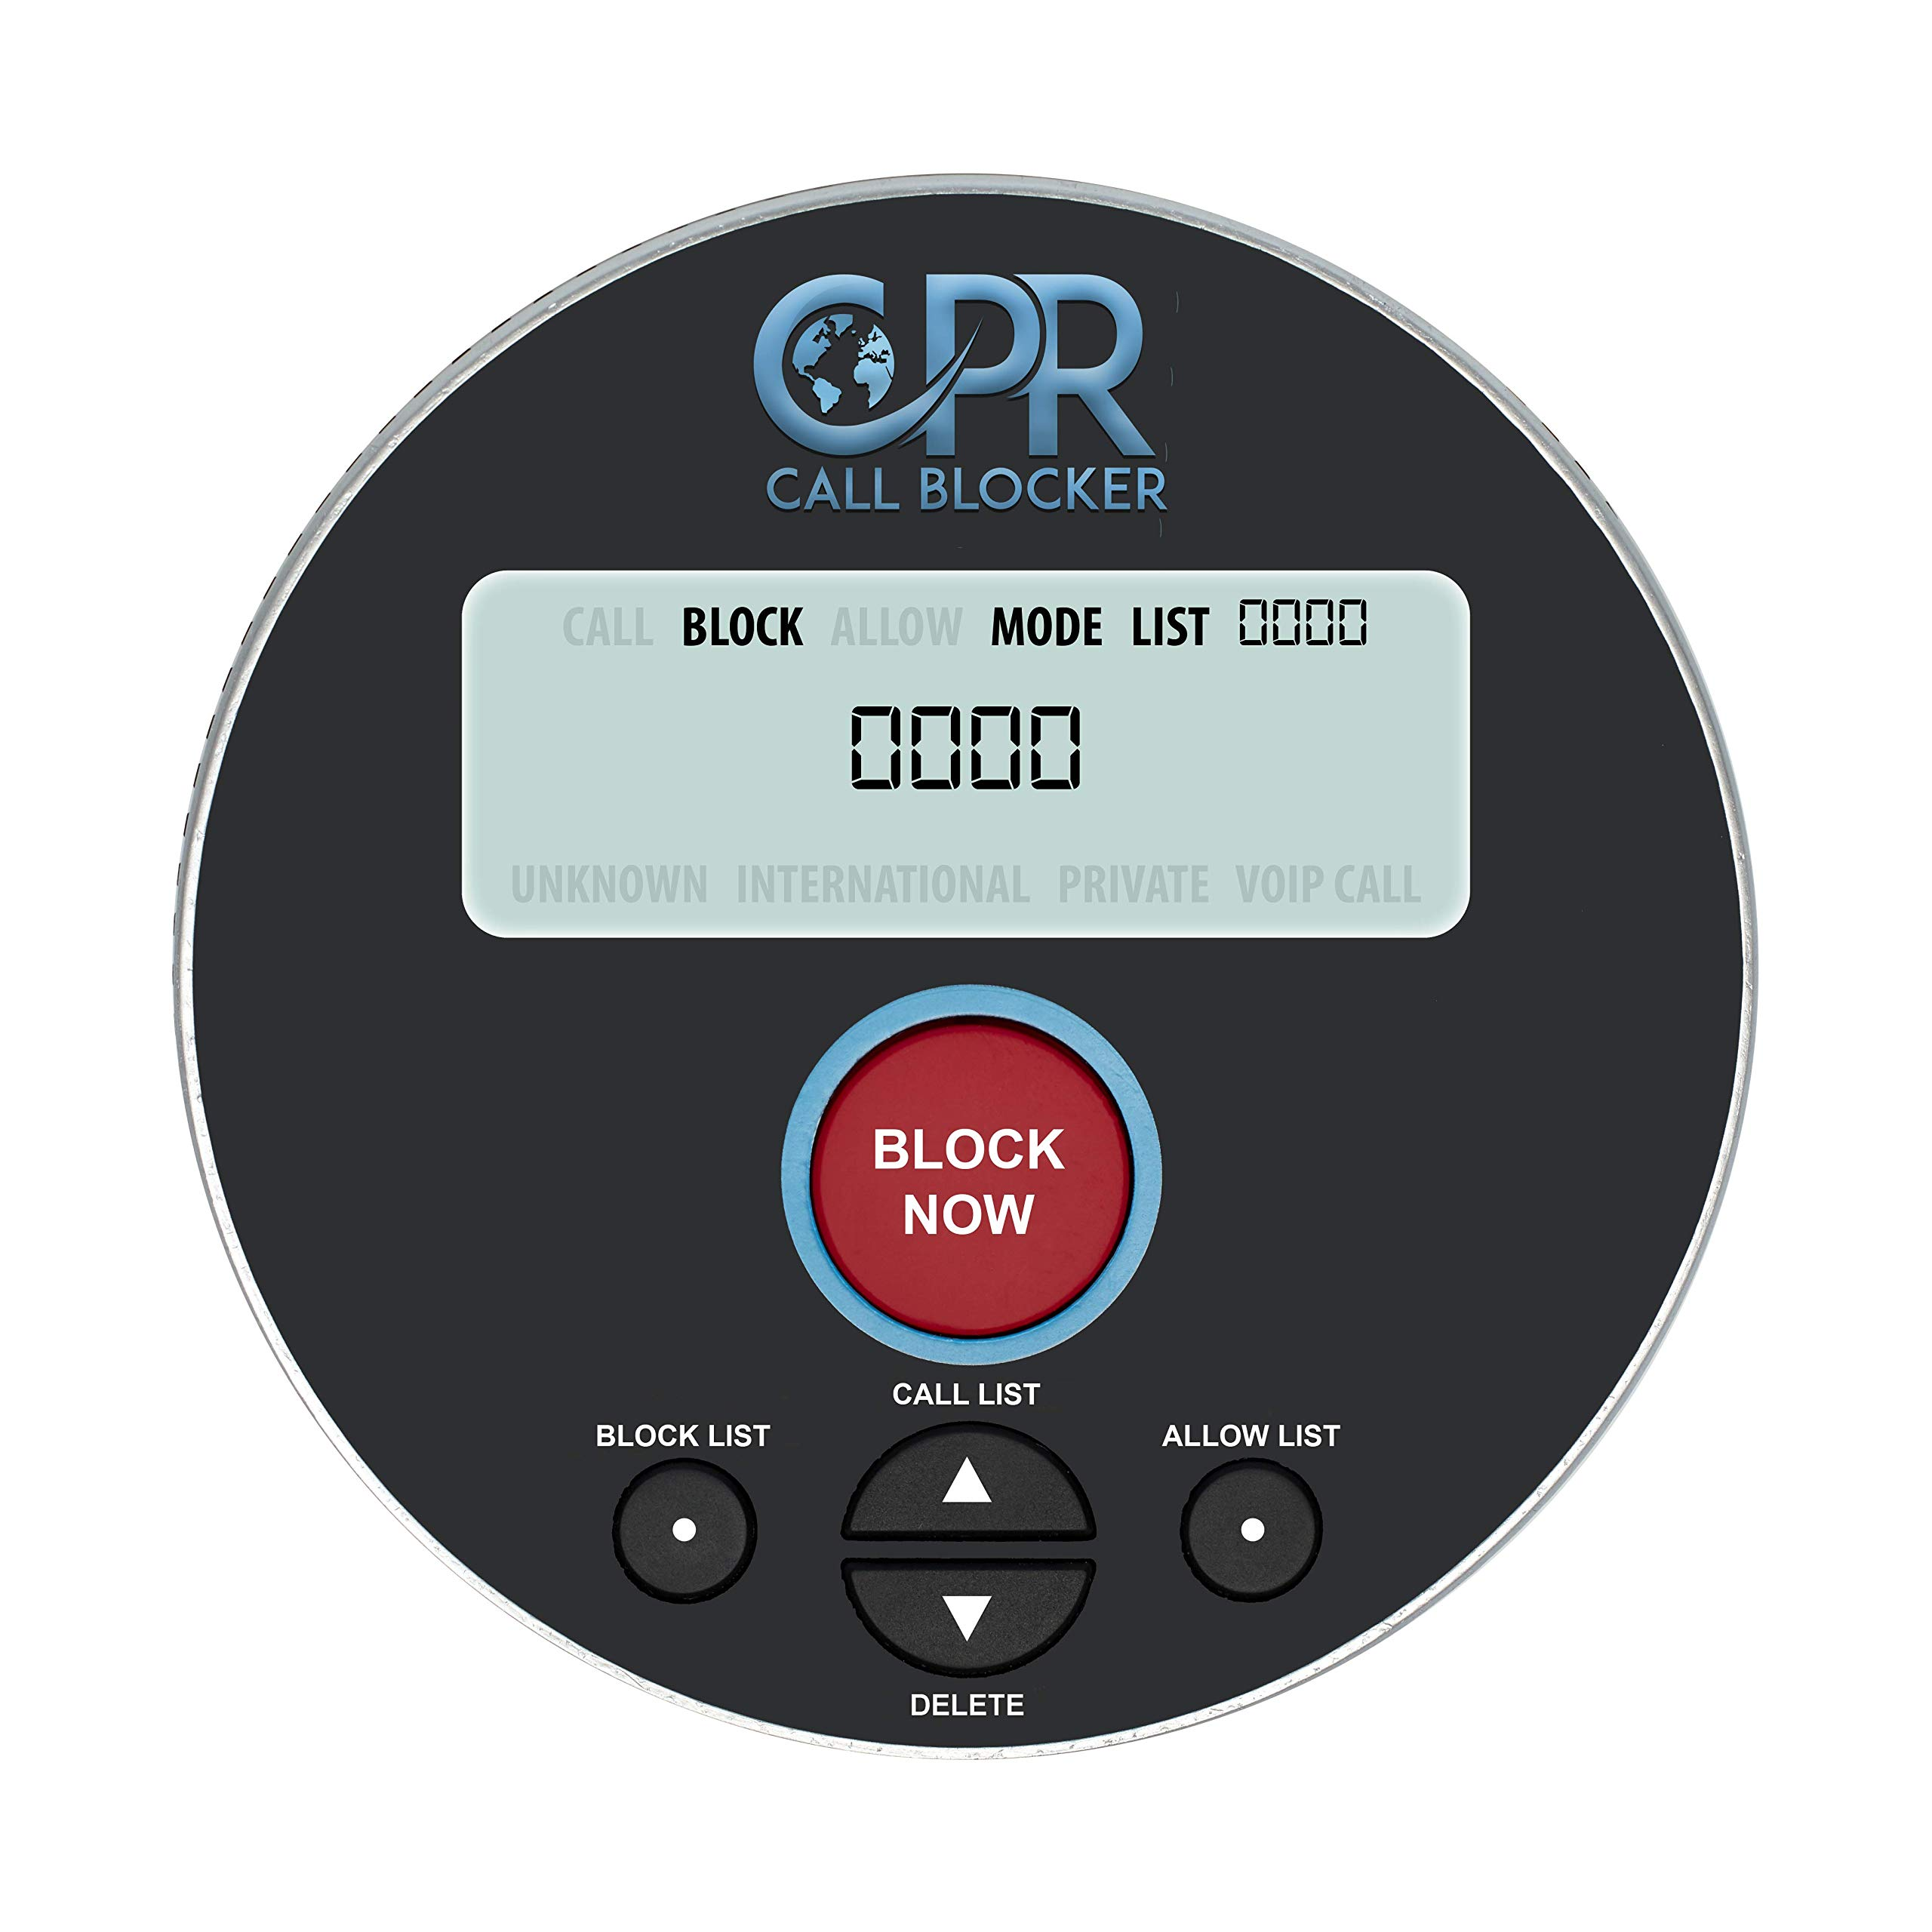 CPR V10000 Call Blocker for Landline Phones. Dual Mode Protection. Pre-Loaded with 10, 000 Known Robocall Scam Numbers - Block A Further 2, 000 Numbers at A Touch of A Button by CPR Call Blocker